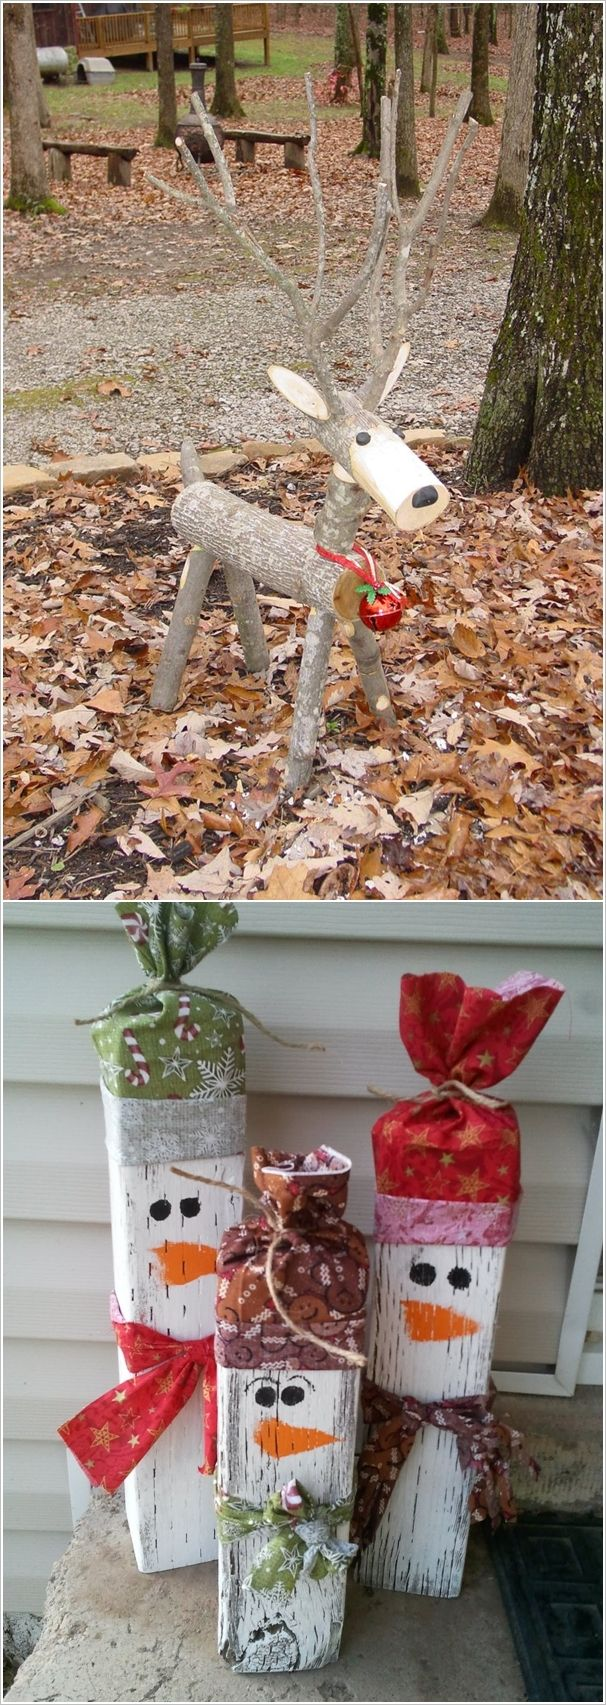 Craft Holiday Decor with Wood